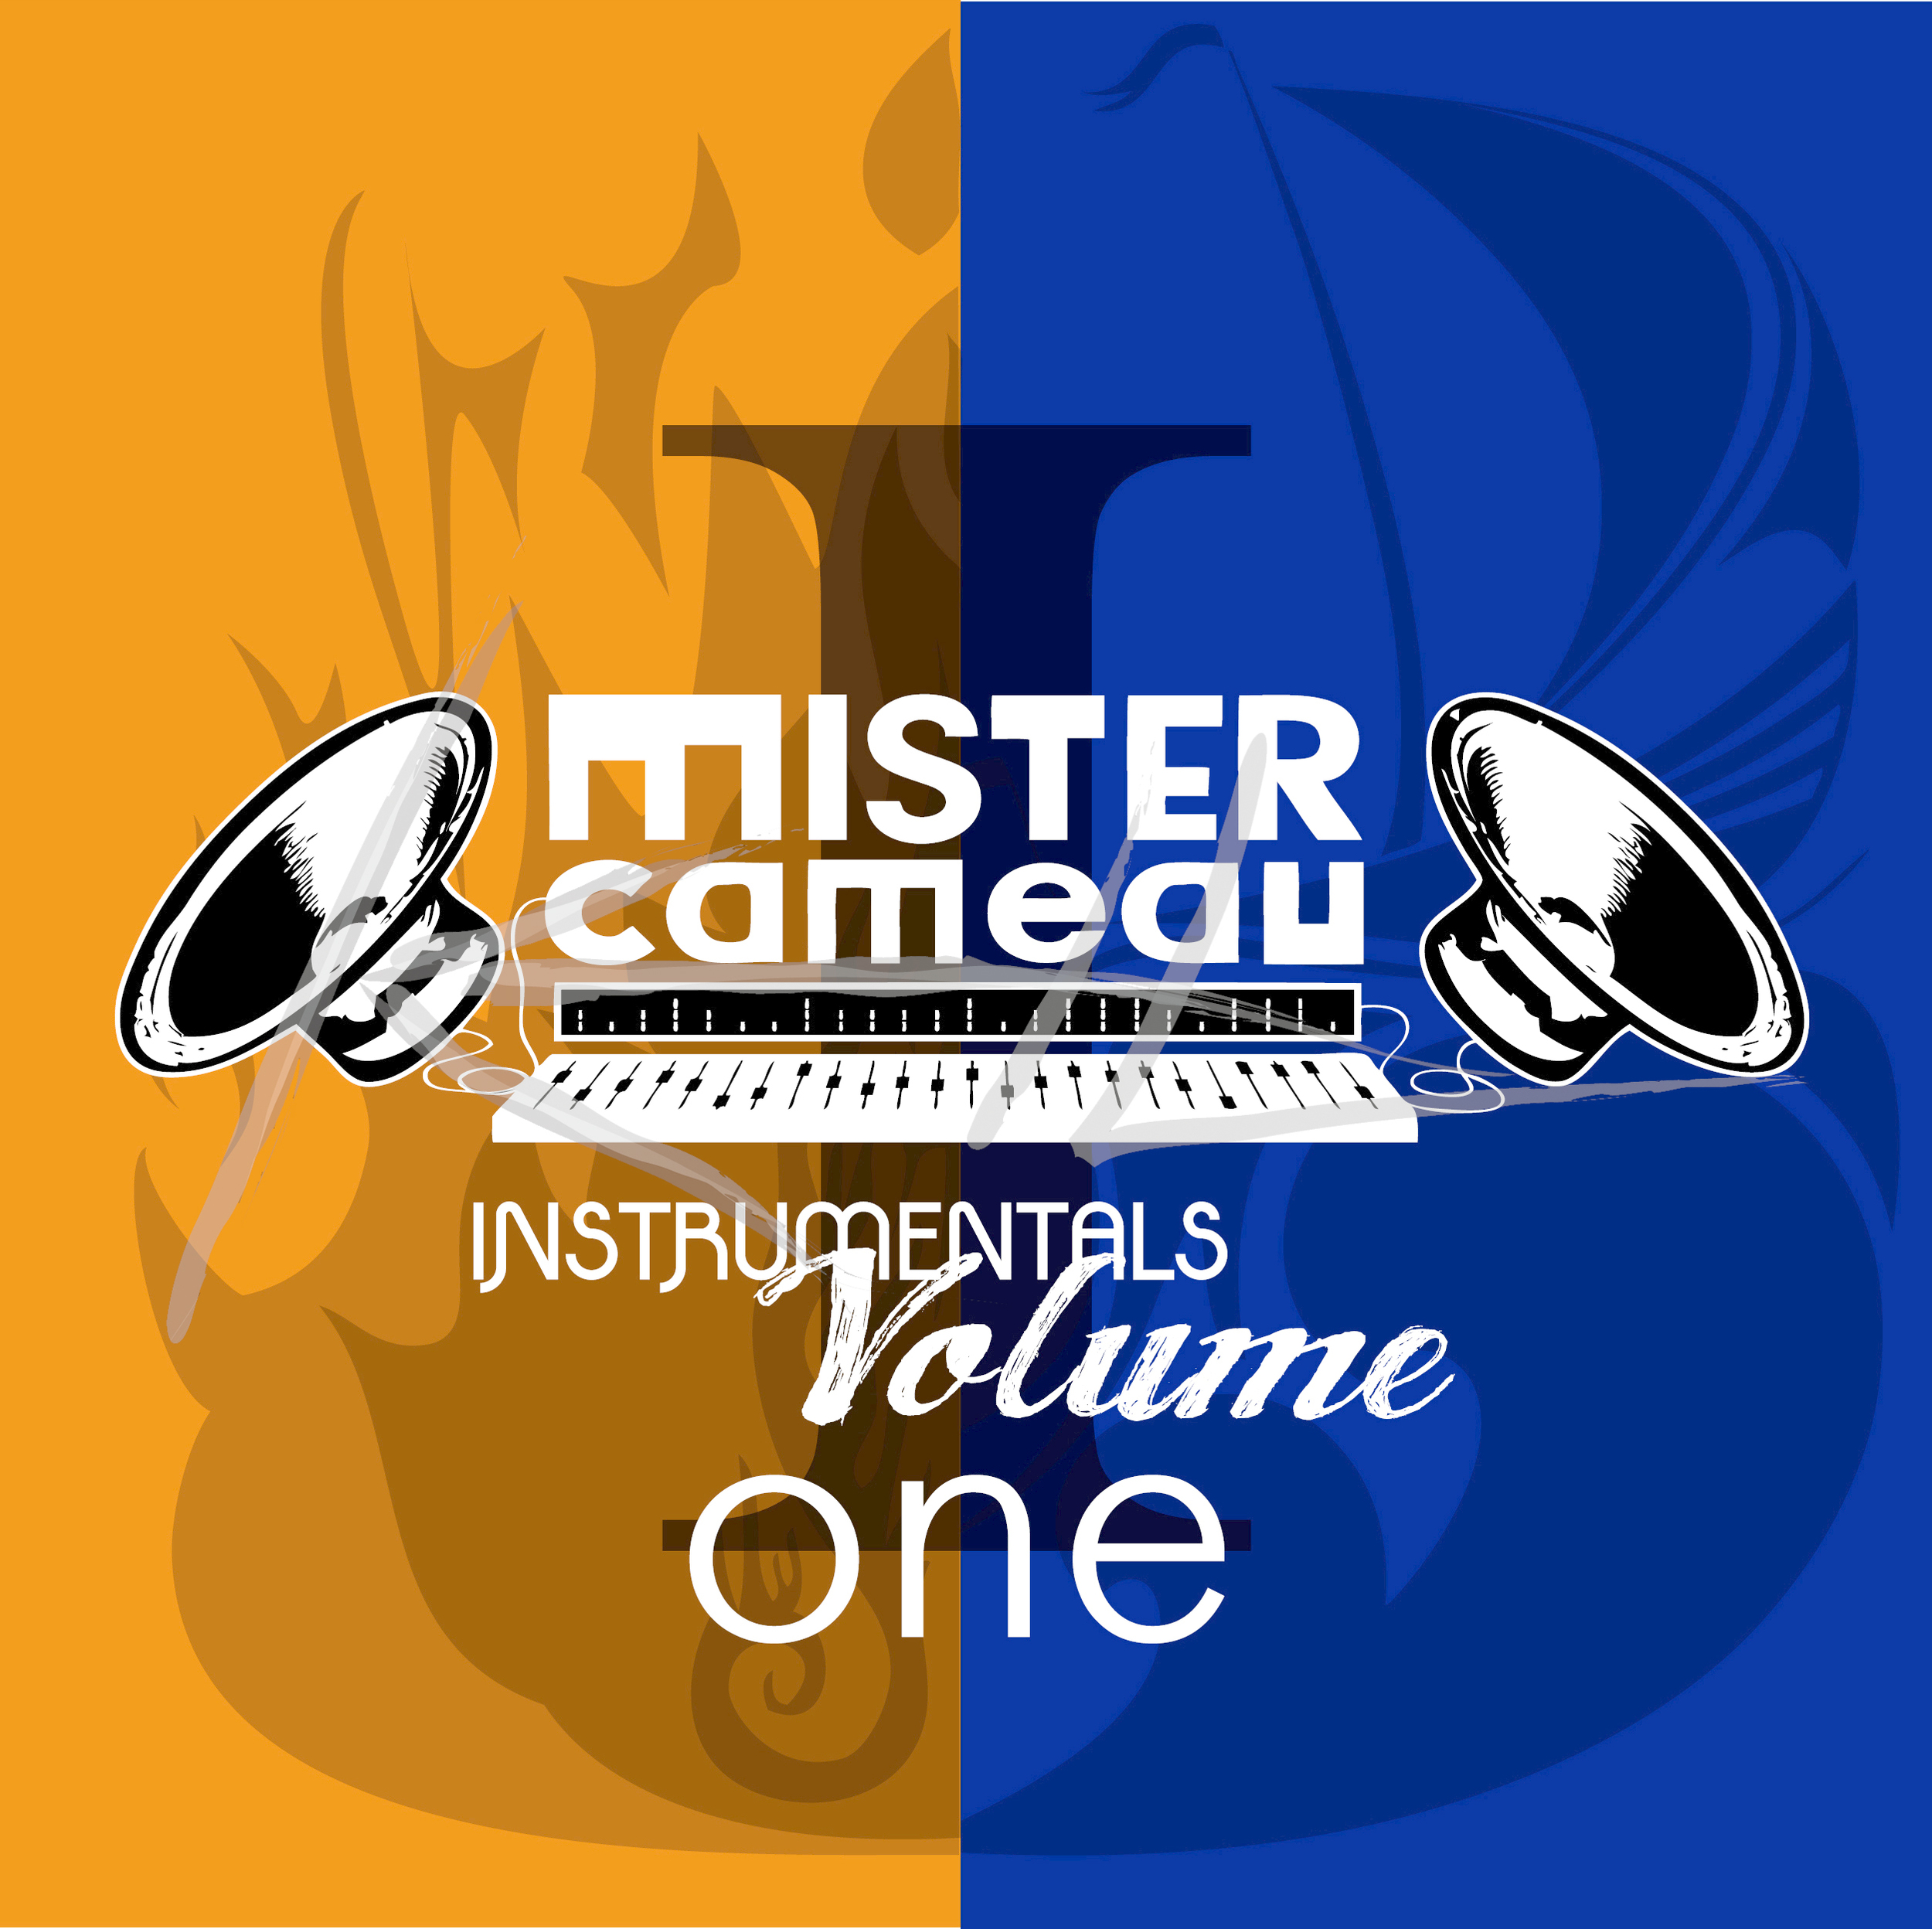 Mister Cameau: Instrumentals, Volume One (Cover)